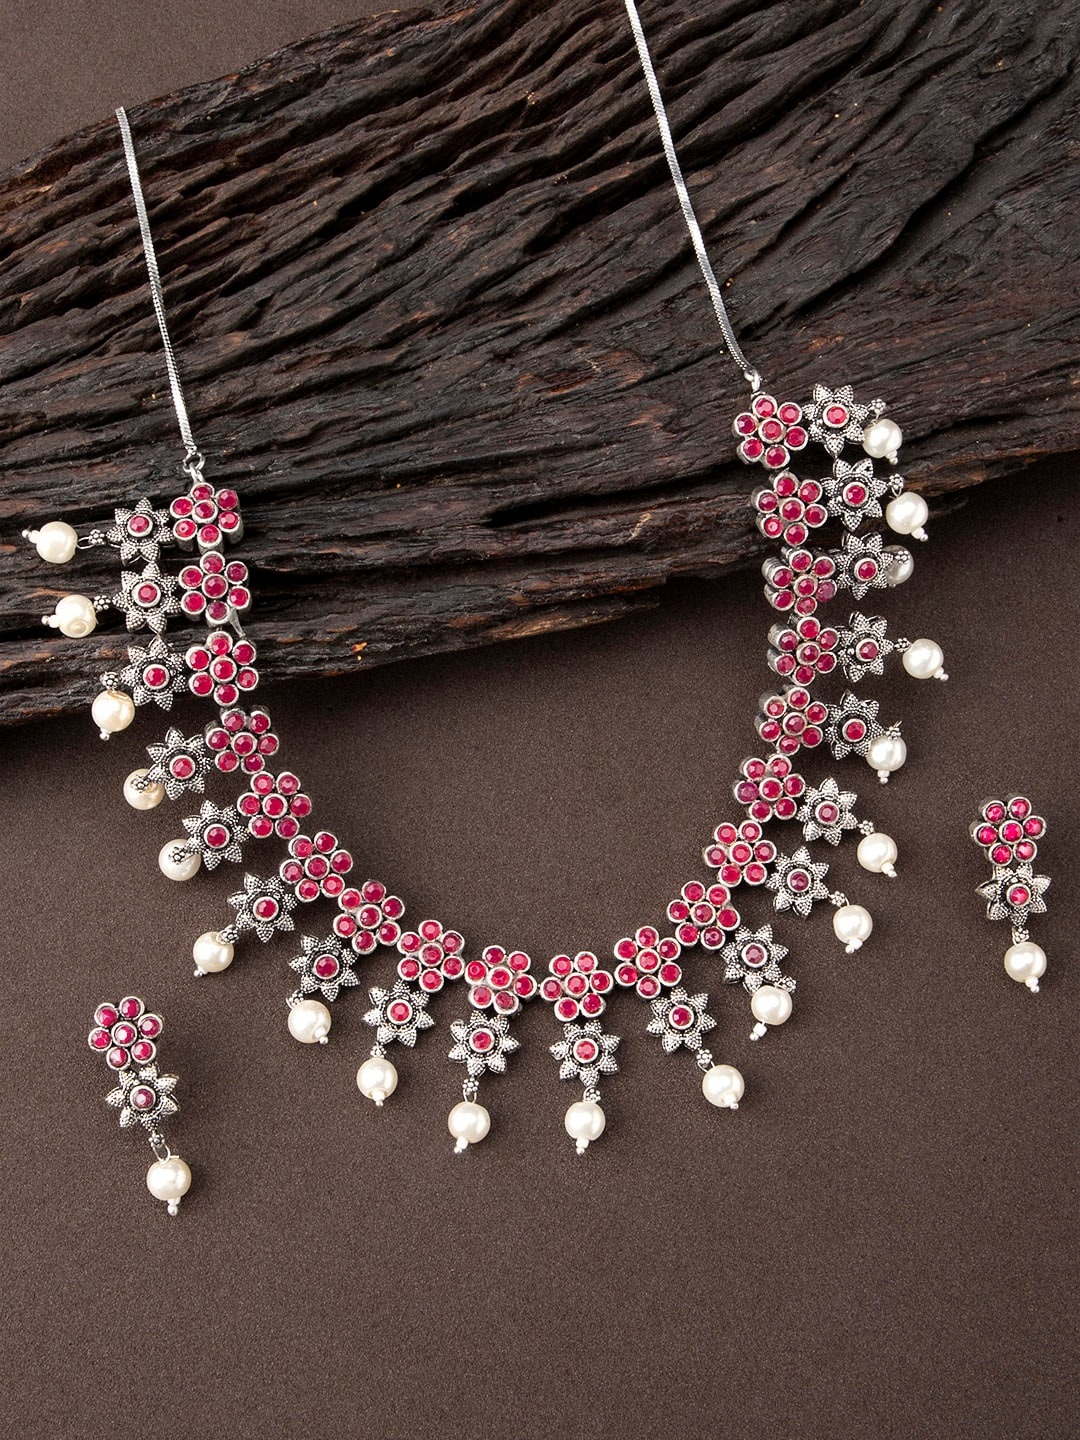 Floret Jewelery Fancy Handmade Pink Flower Set With Earrings For Women Gift Item Save 50-70% Engagement & Wedding Bridal & Wedding Party Jewelry